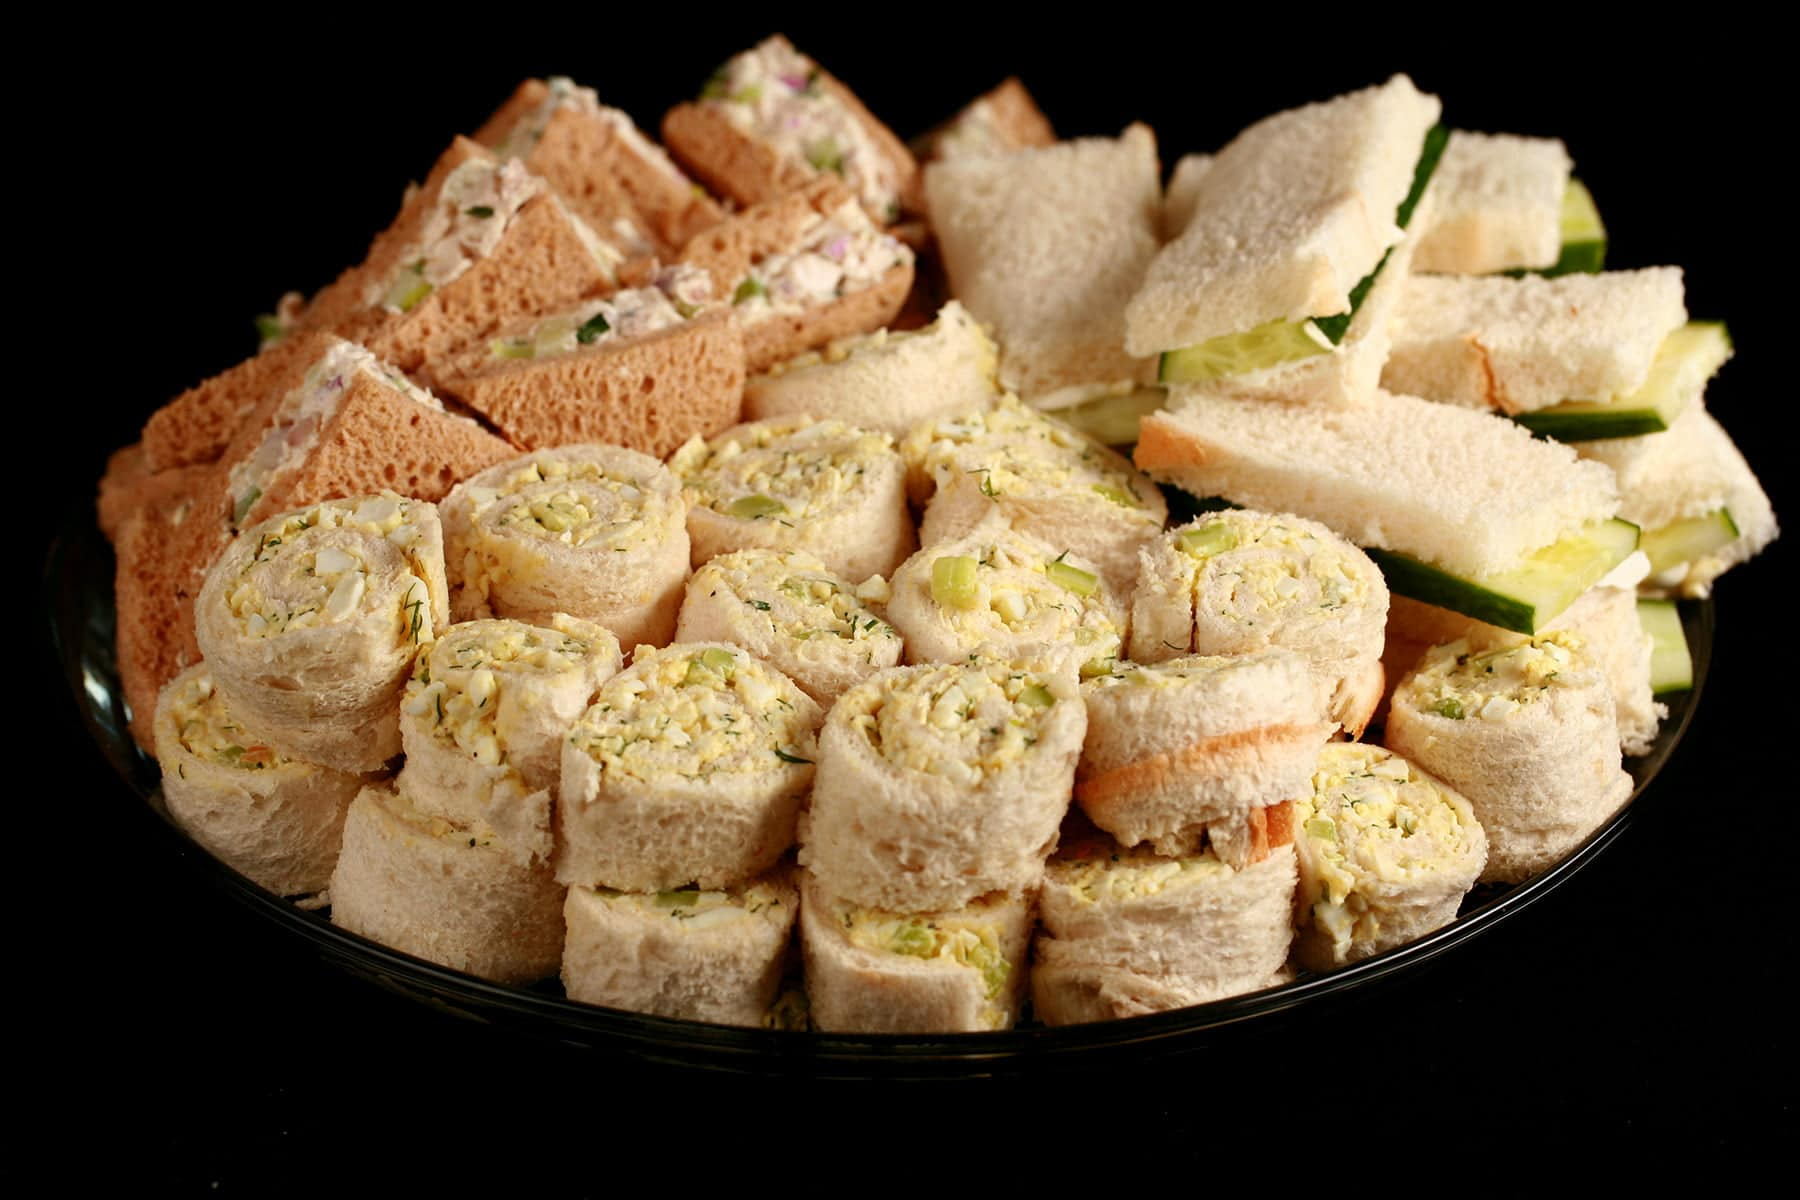 A large platter of fancy tea sandwiches. Cucumber cream cheese finger sandwiches, egg salad pinwheels, and tarragon chicken salad triangles.